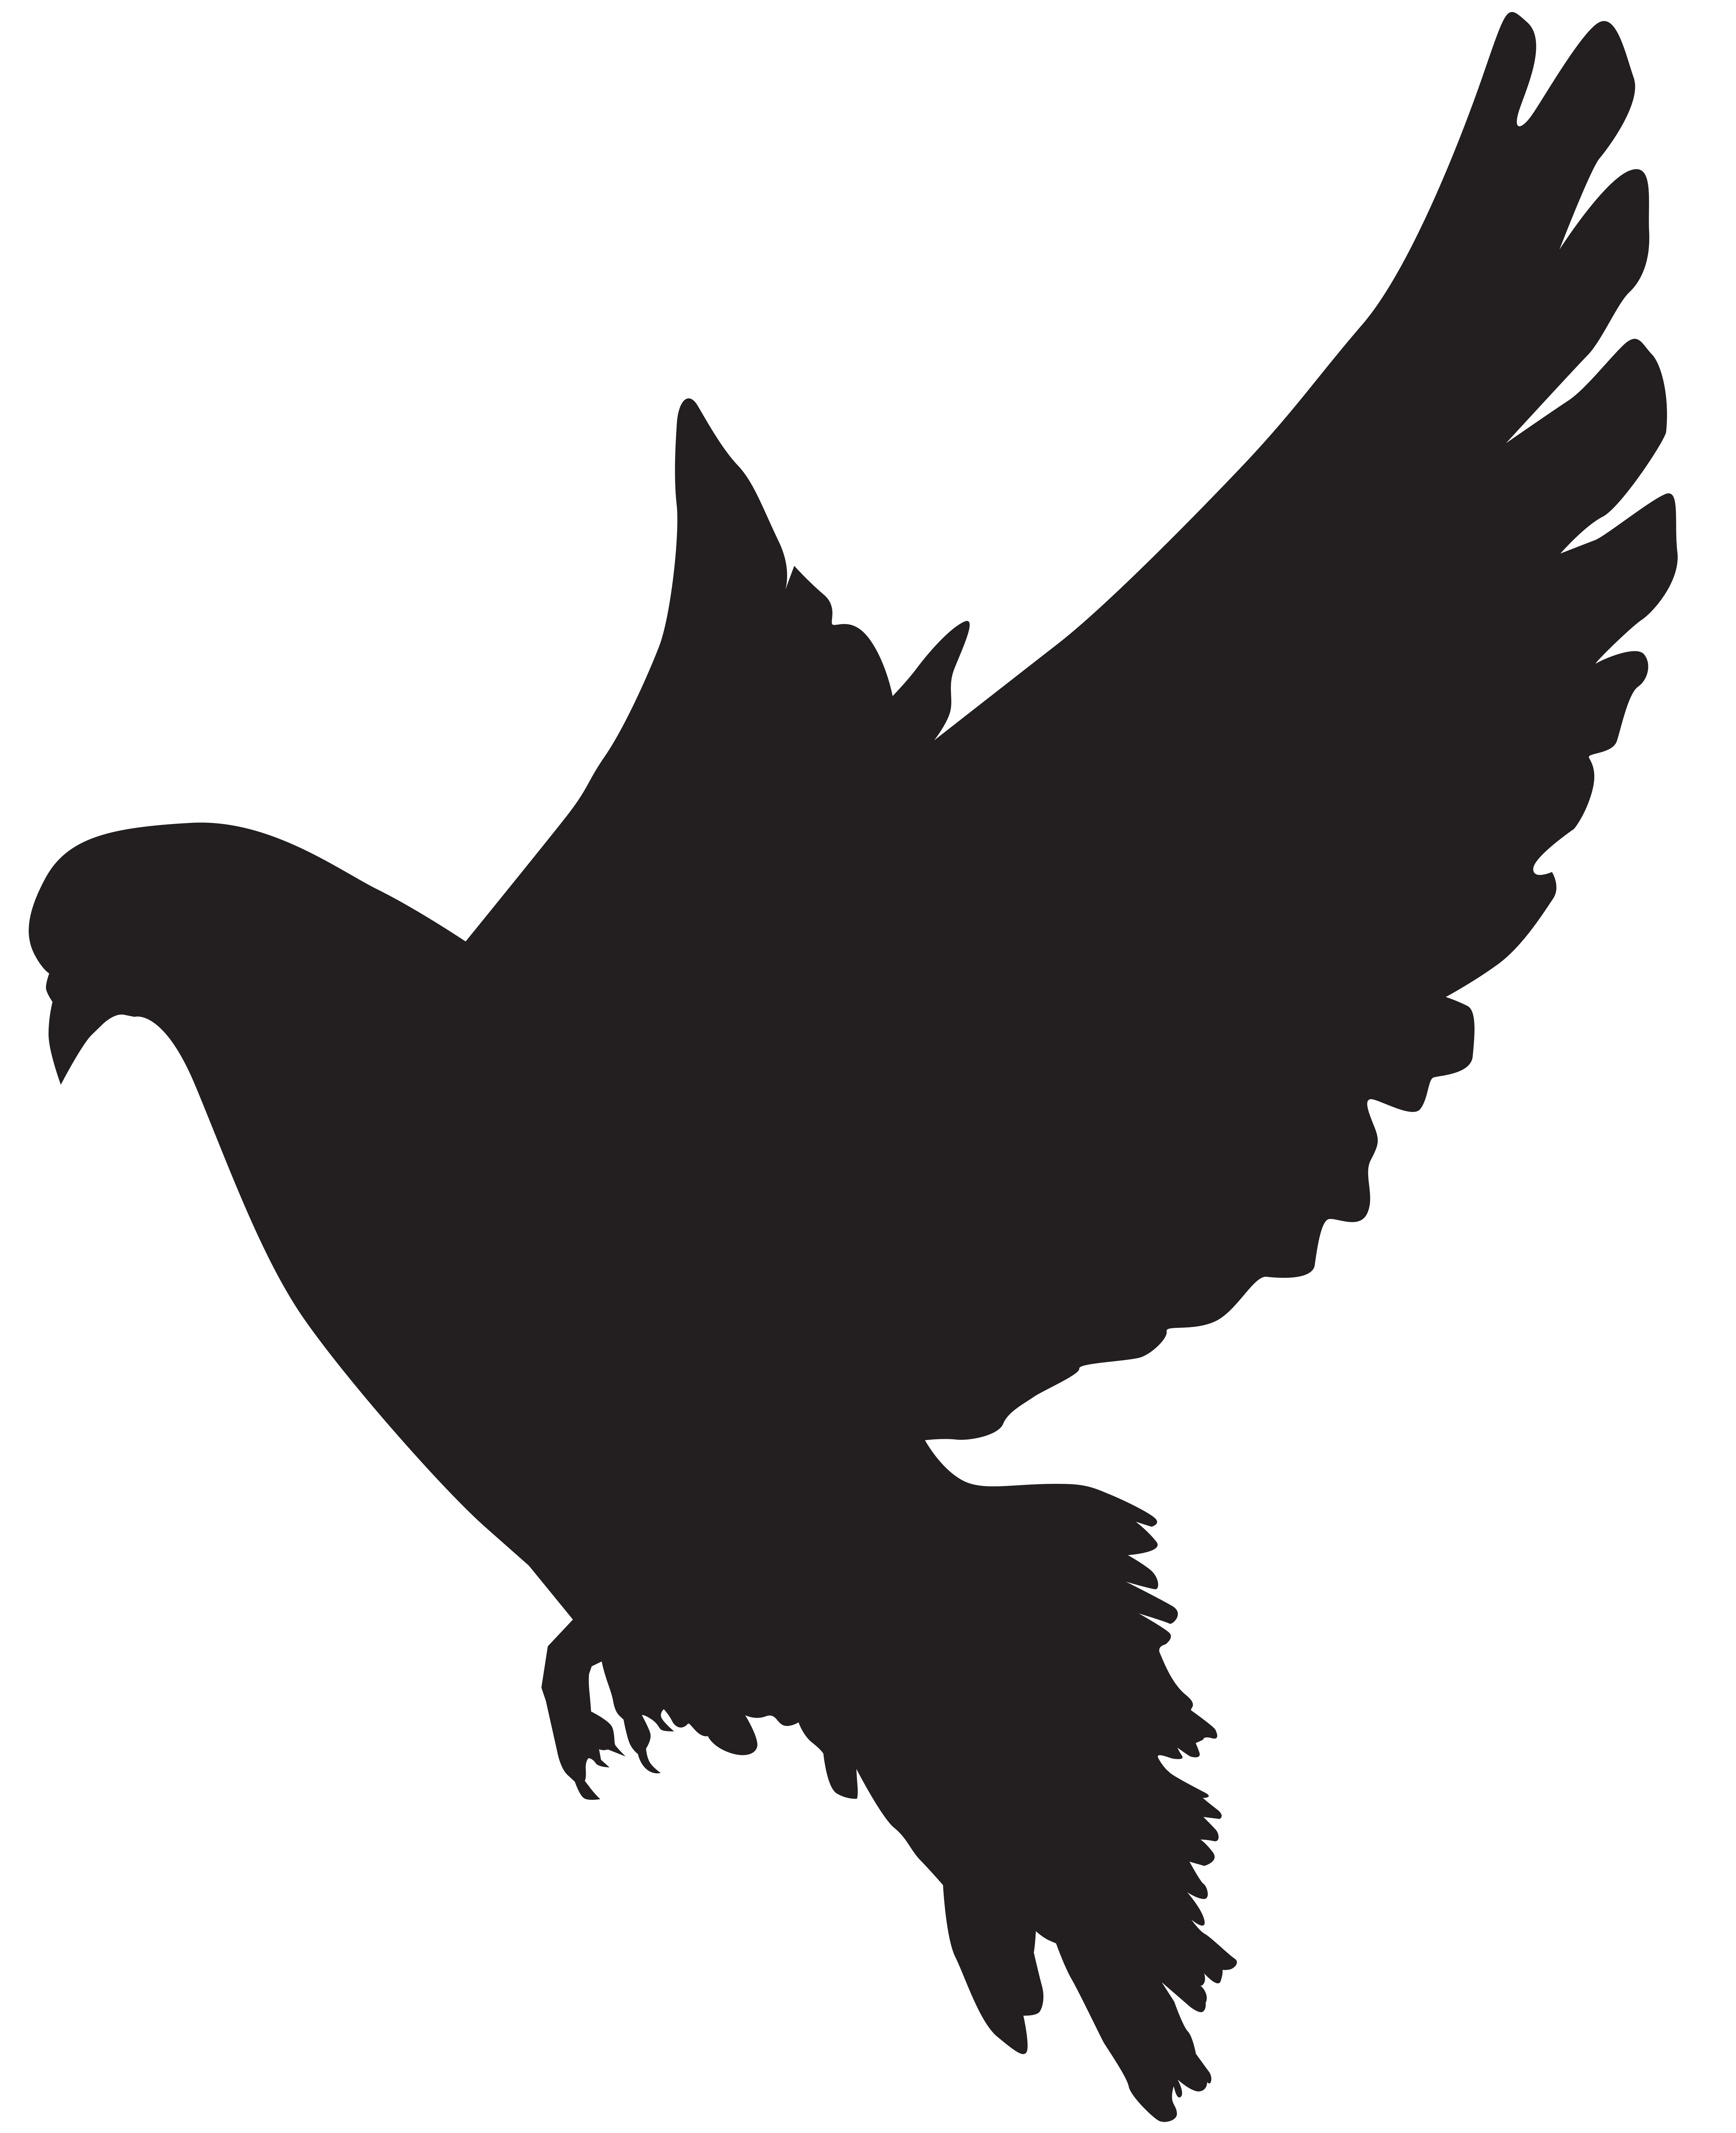 6510x8000 Dove Silhouette Png Clip Art Imageu200b Gallery Yopriceville